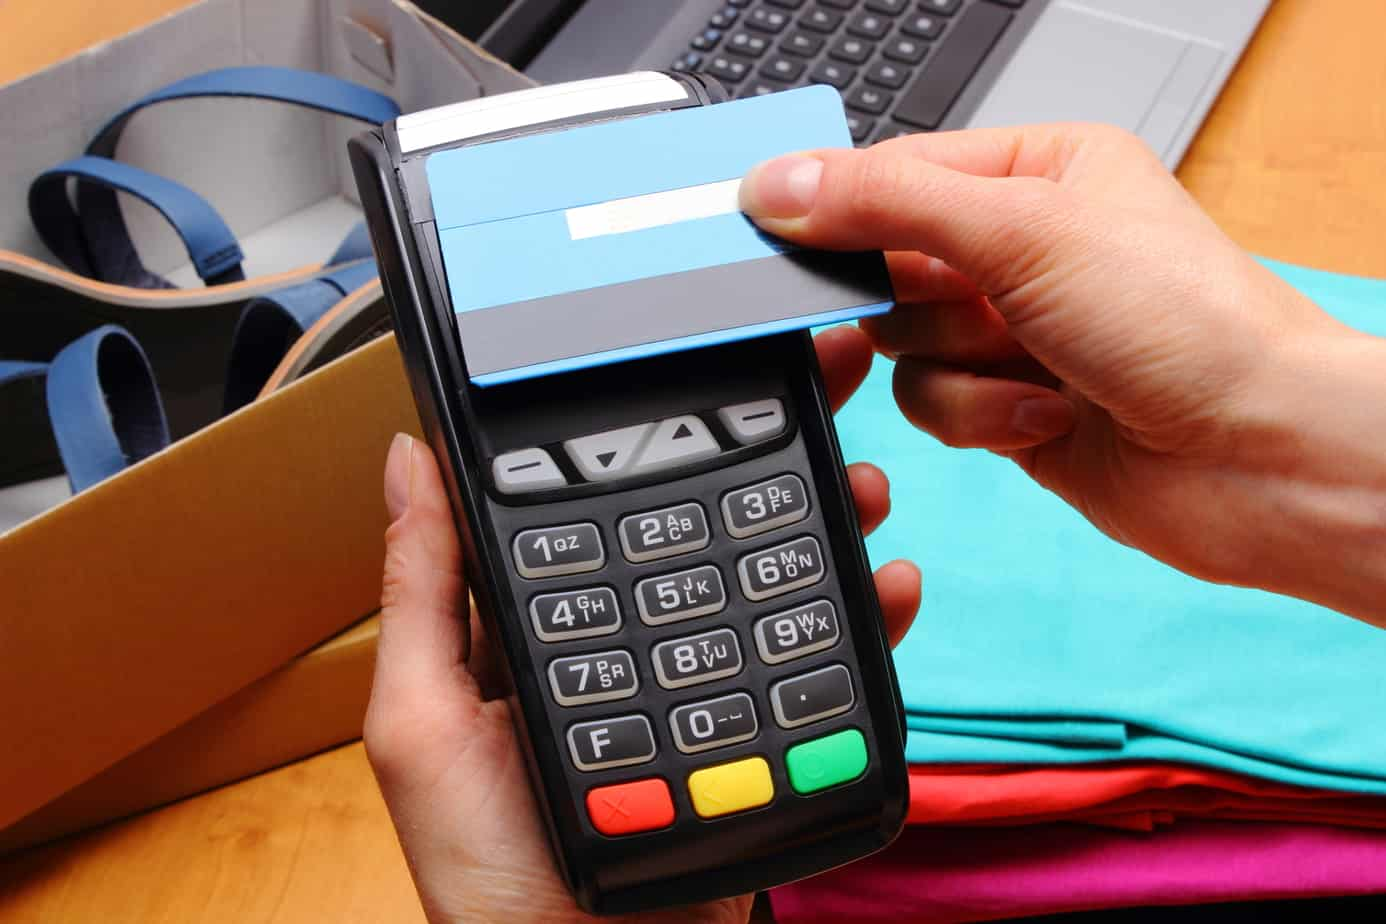 Use Payment Terminal And Credit Card With Nfc Technology For Paying For Purchases In Store 61496229